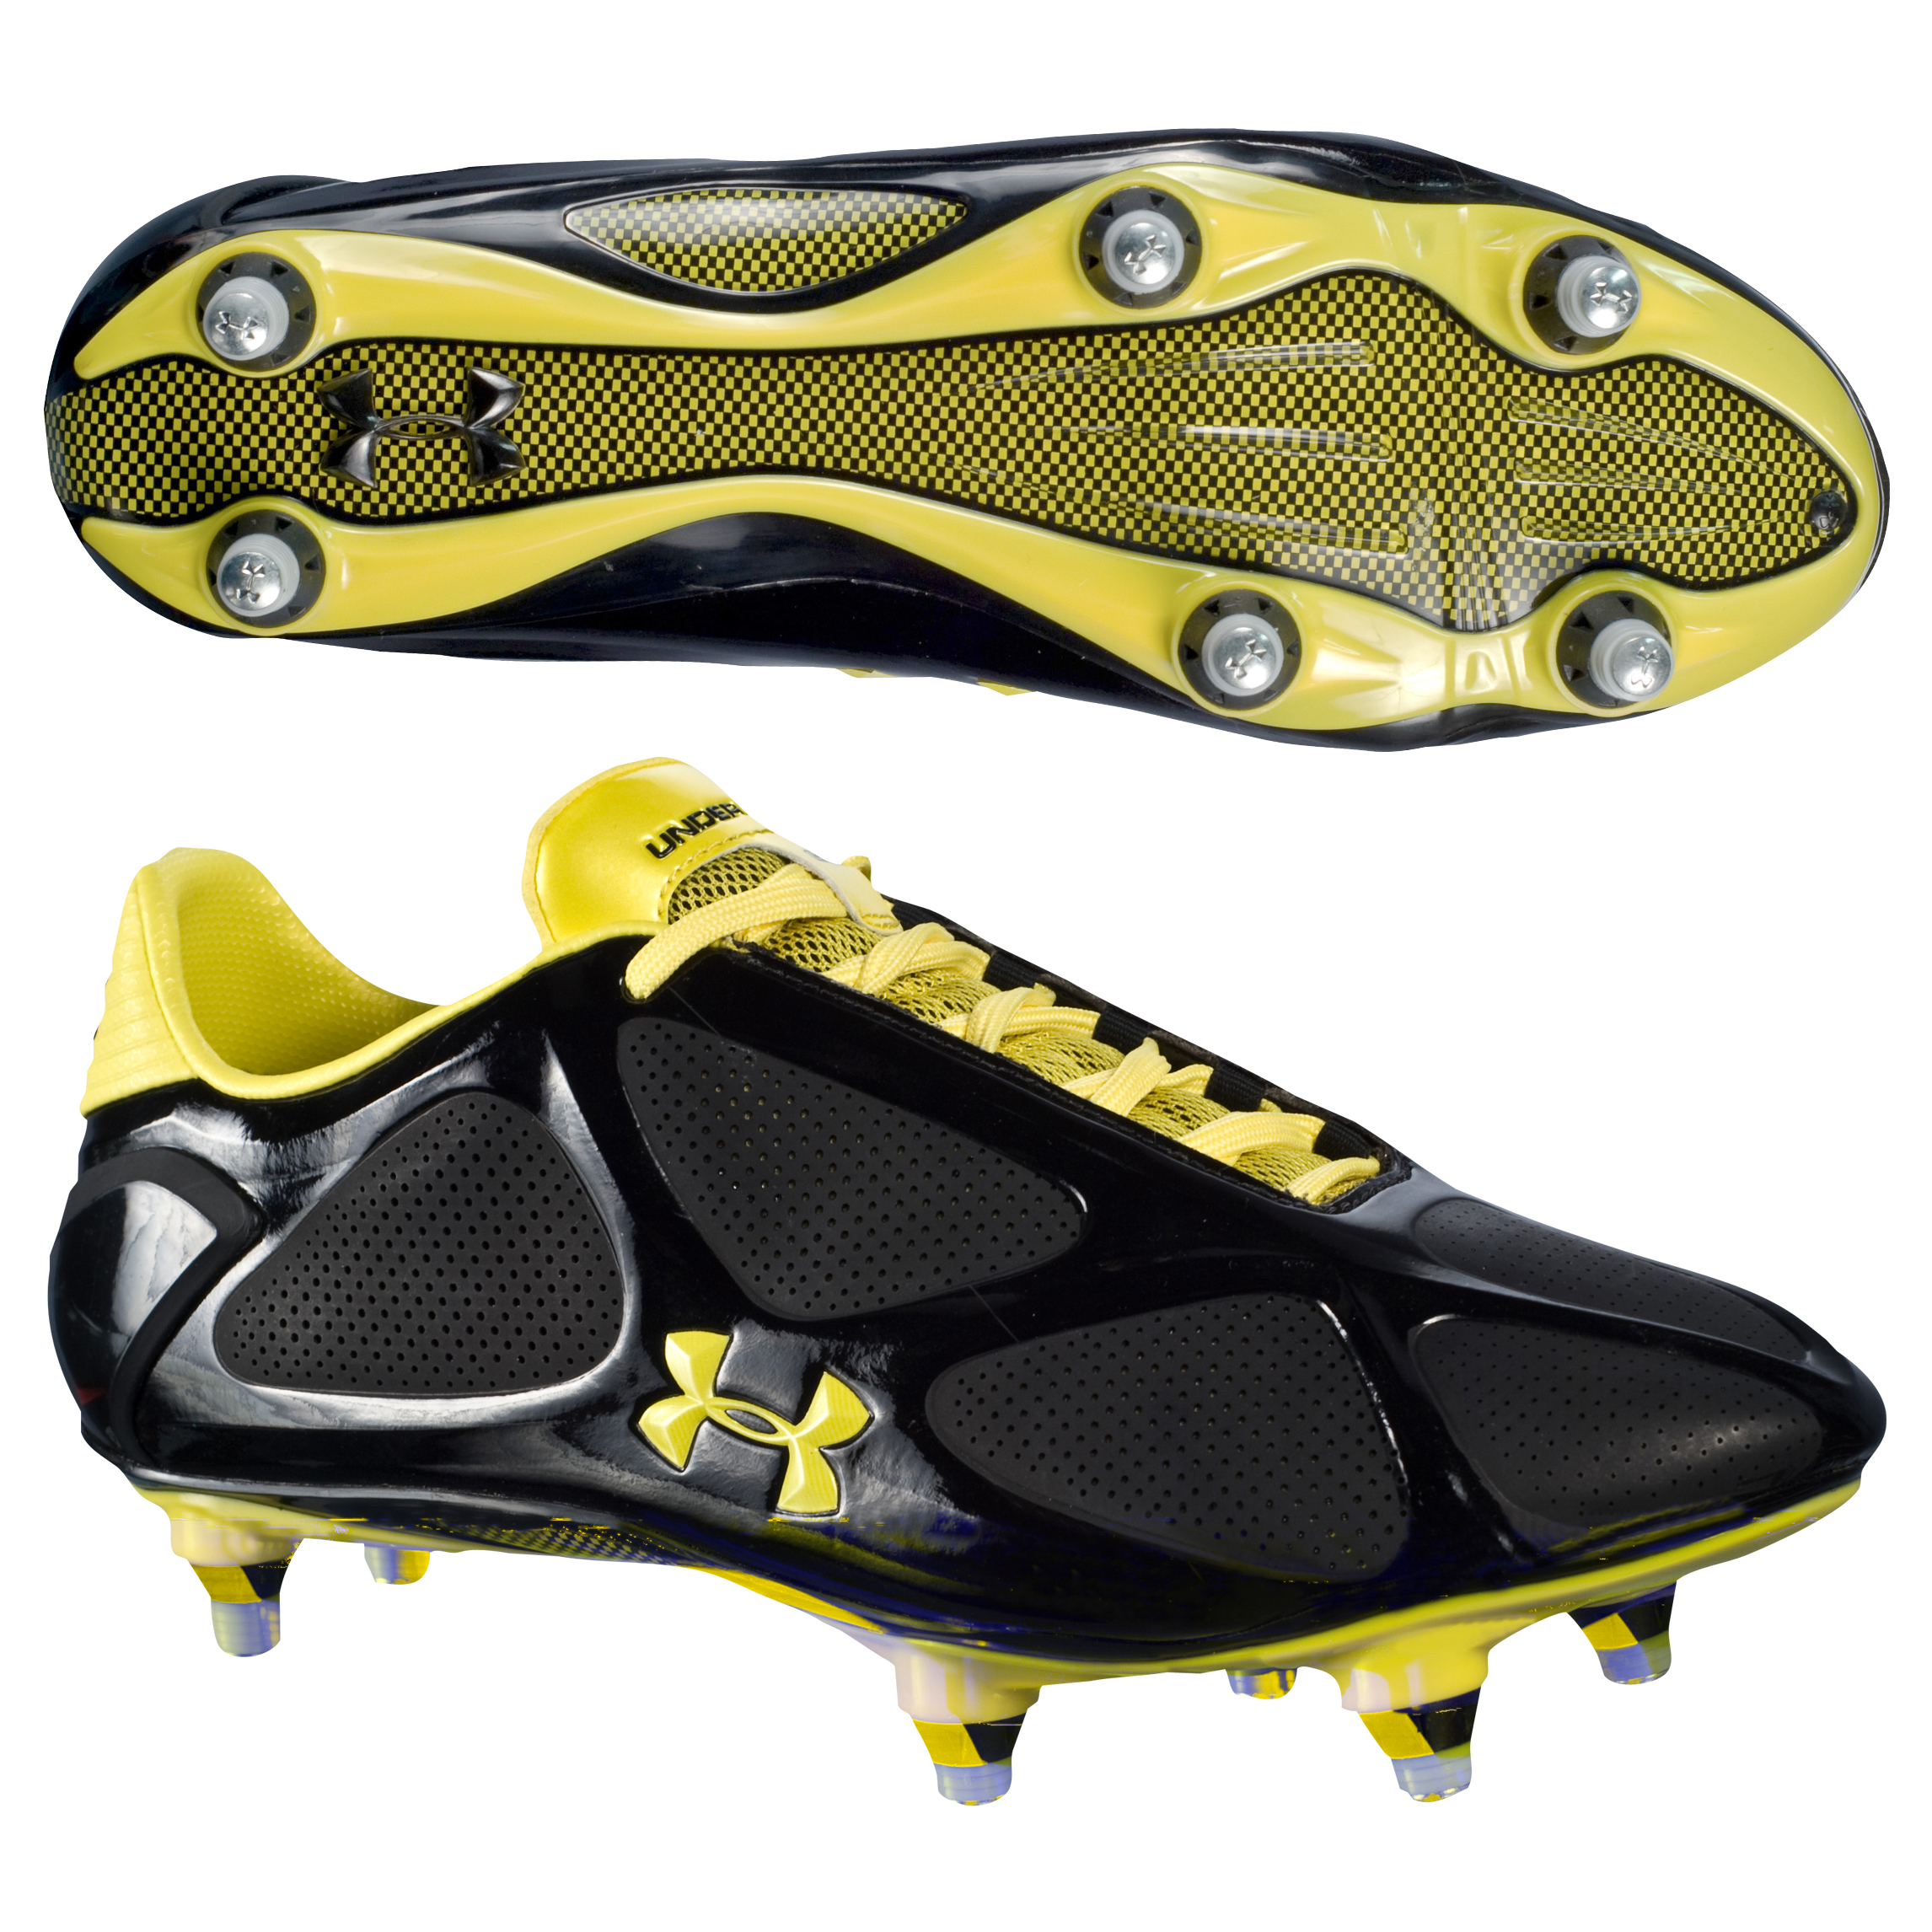 Under Armour Create Pro Soft Ground Football Boots -Bla